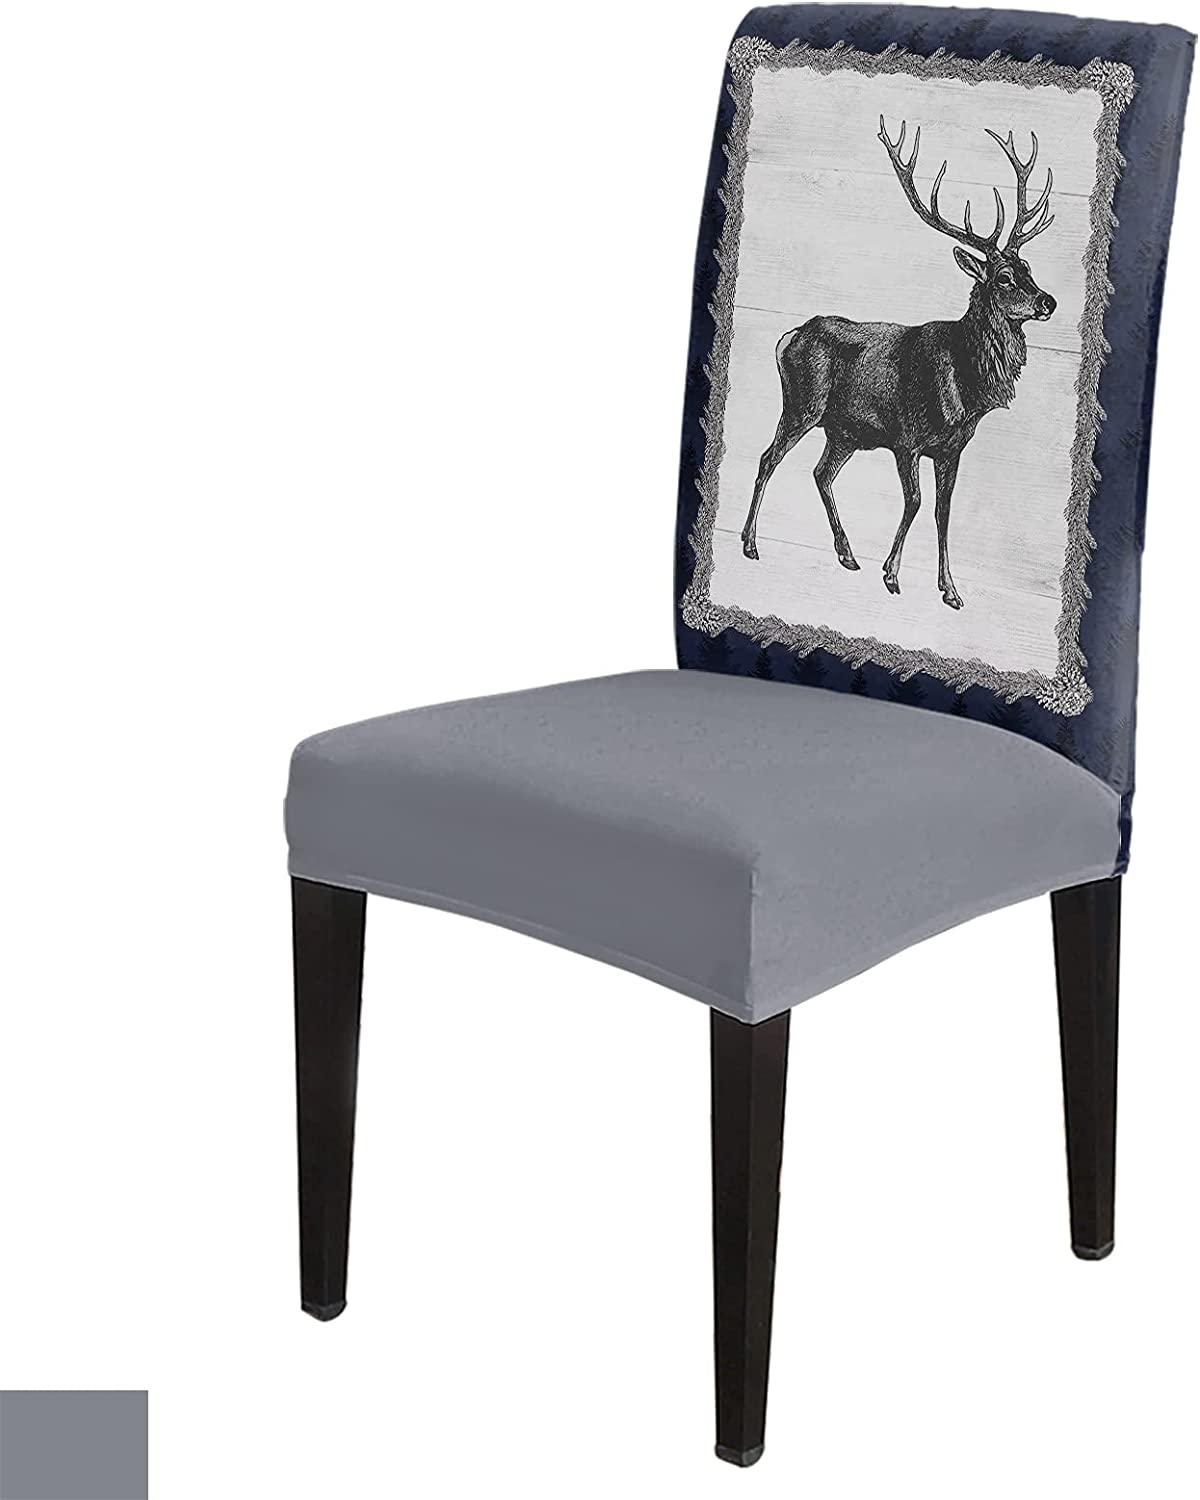 8 Per Set Black White ! Super beauty product restock quality top! Art Drawn Pine for Covers Chair Deer Cheap mail order shopping Berry